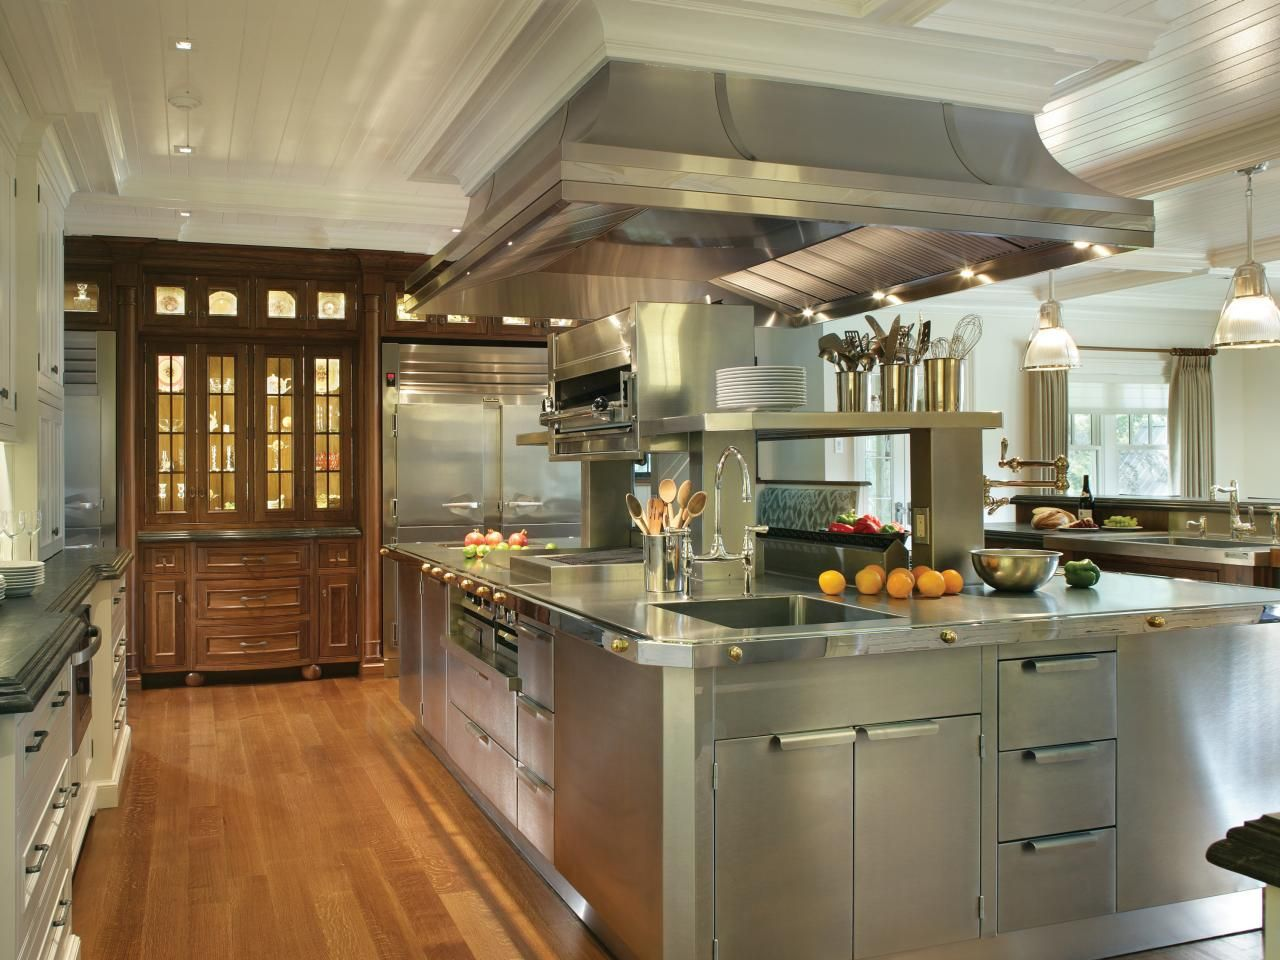 A Kitchen with The Presence of Hospitality | Hospitality, Hgtv and ...